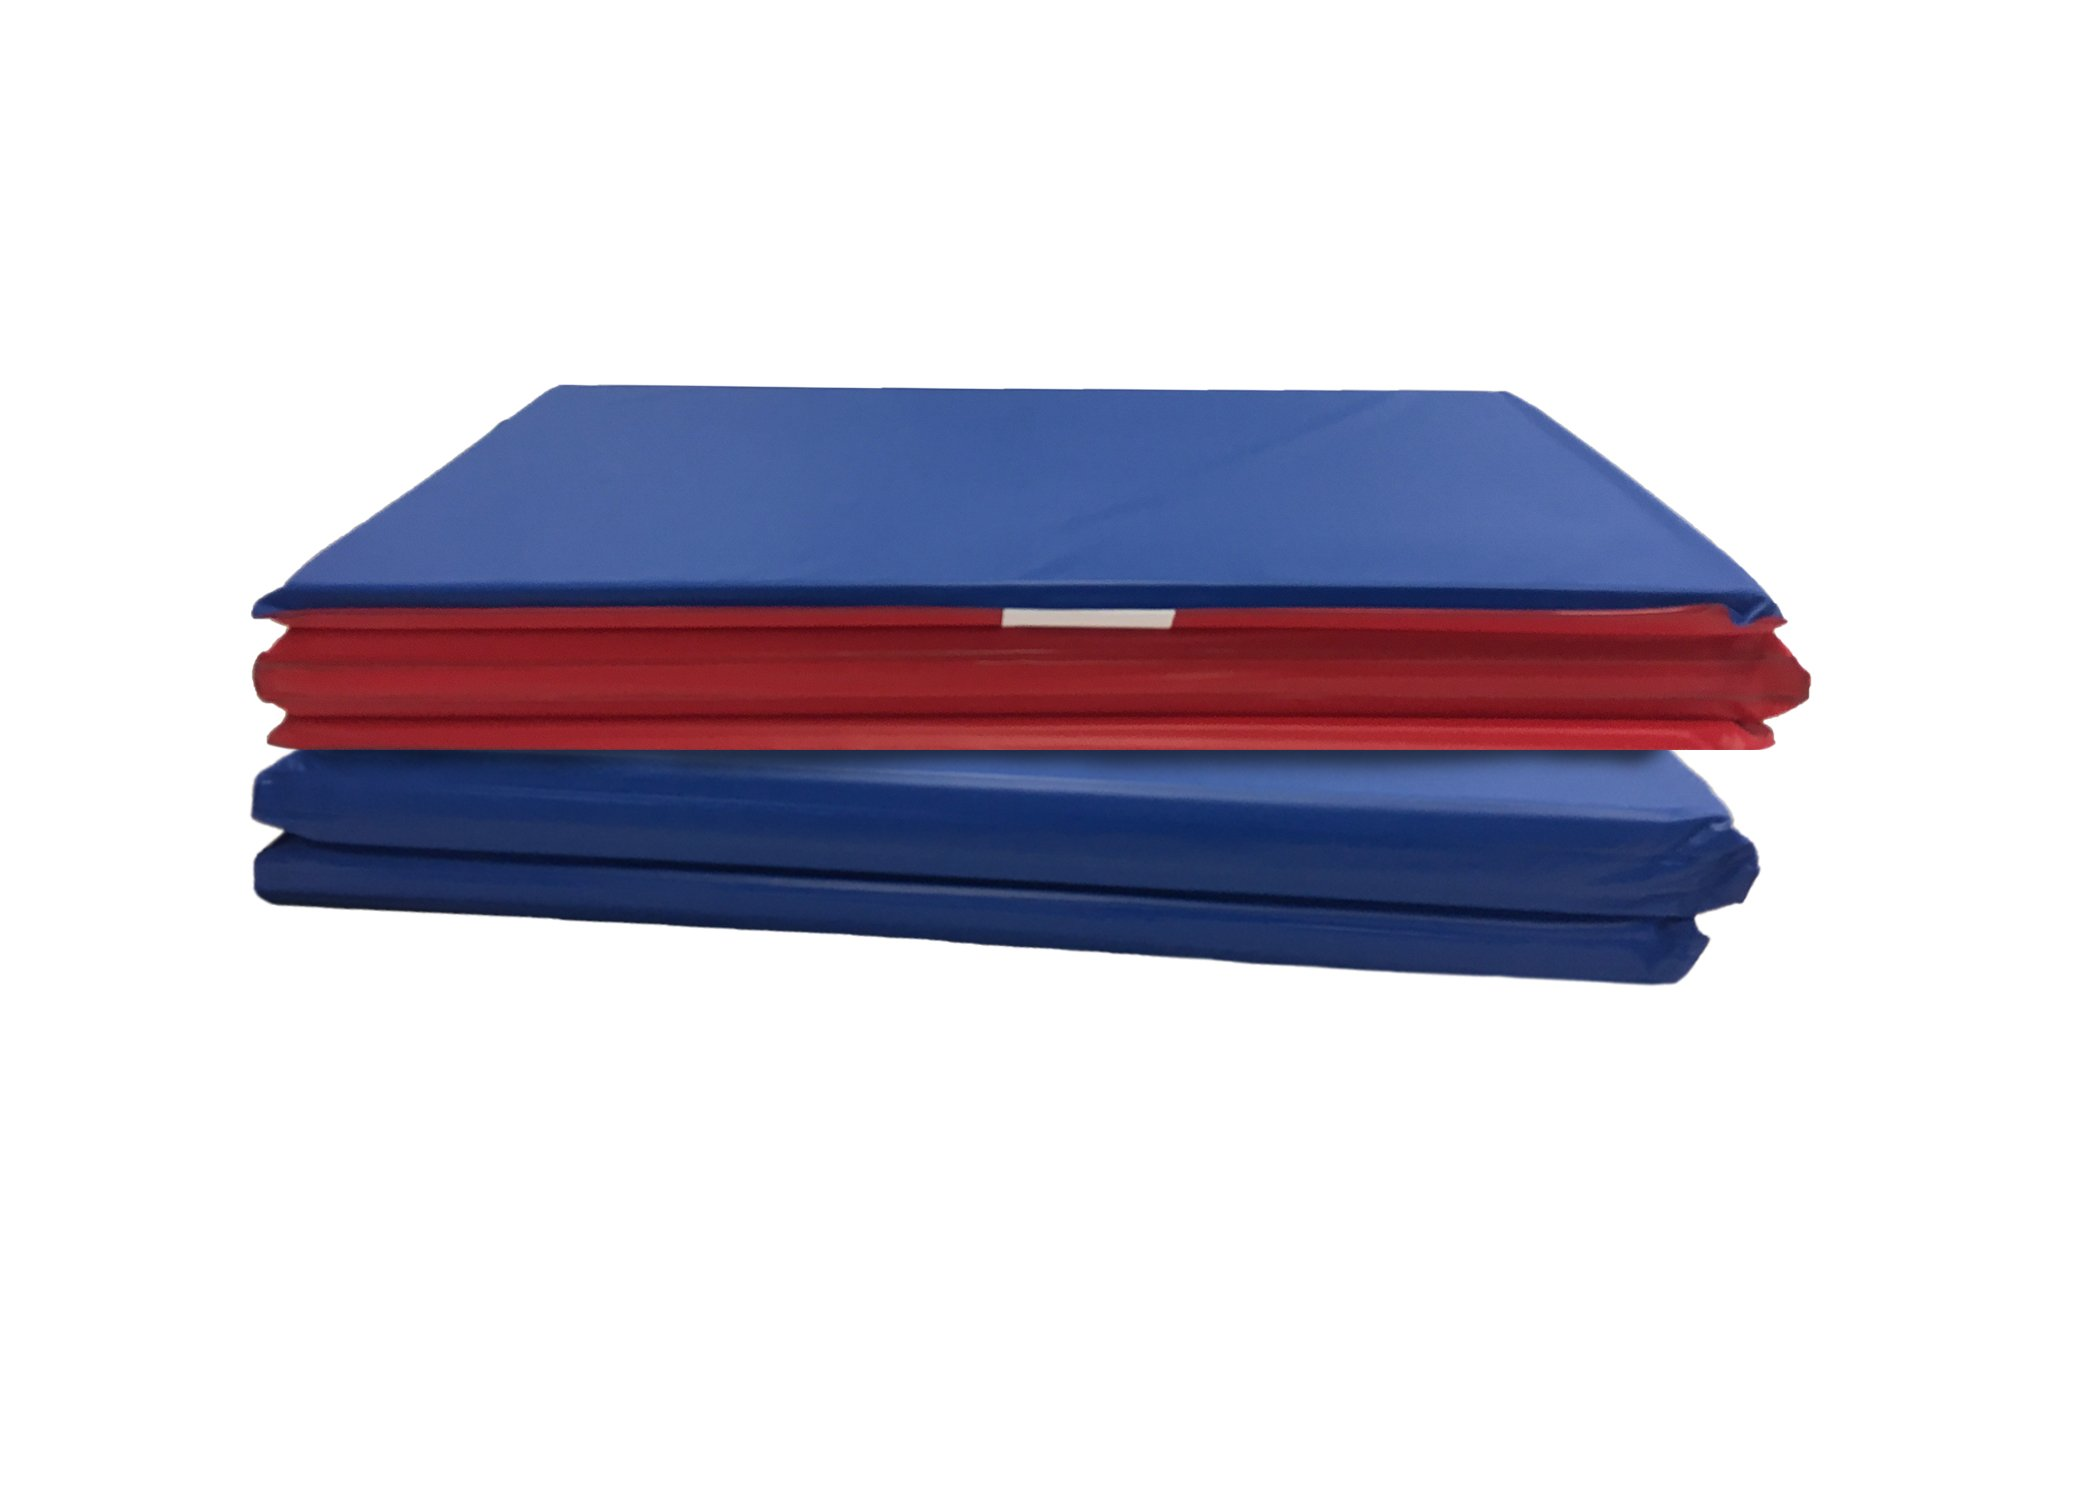 KinderMat, Basic Rest Mat, 5/8 Inch Thick, 45 x 19, Red/Blue, 2-Count